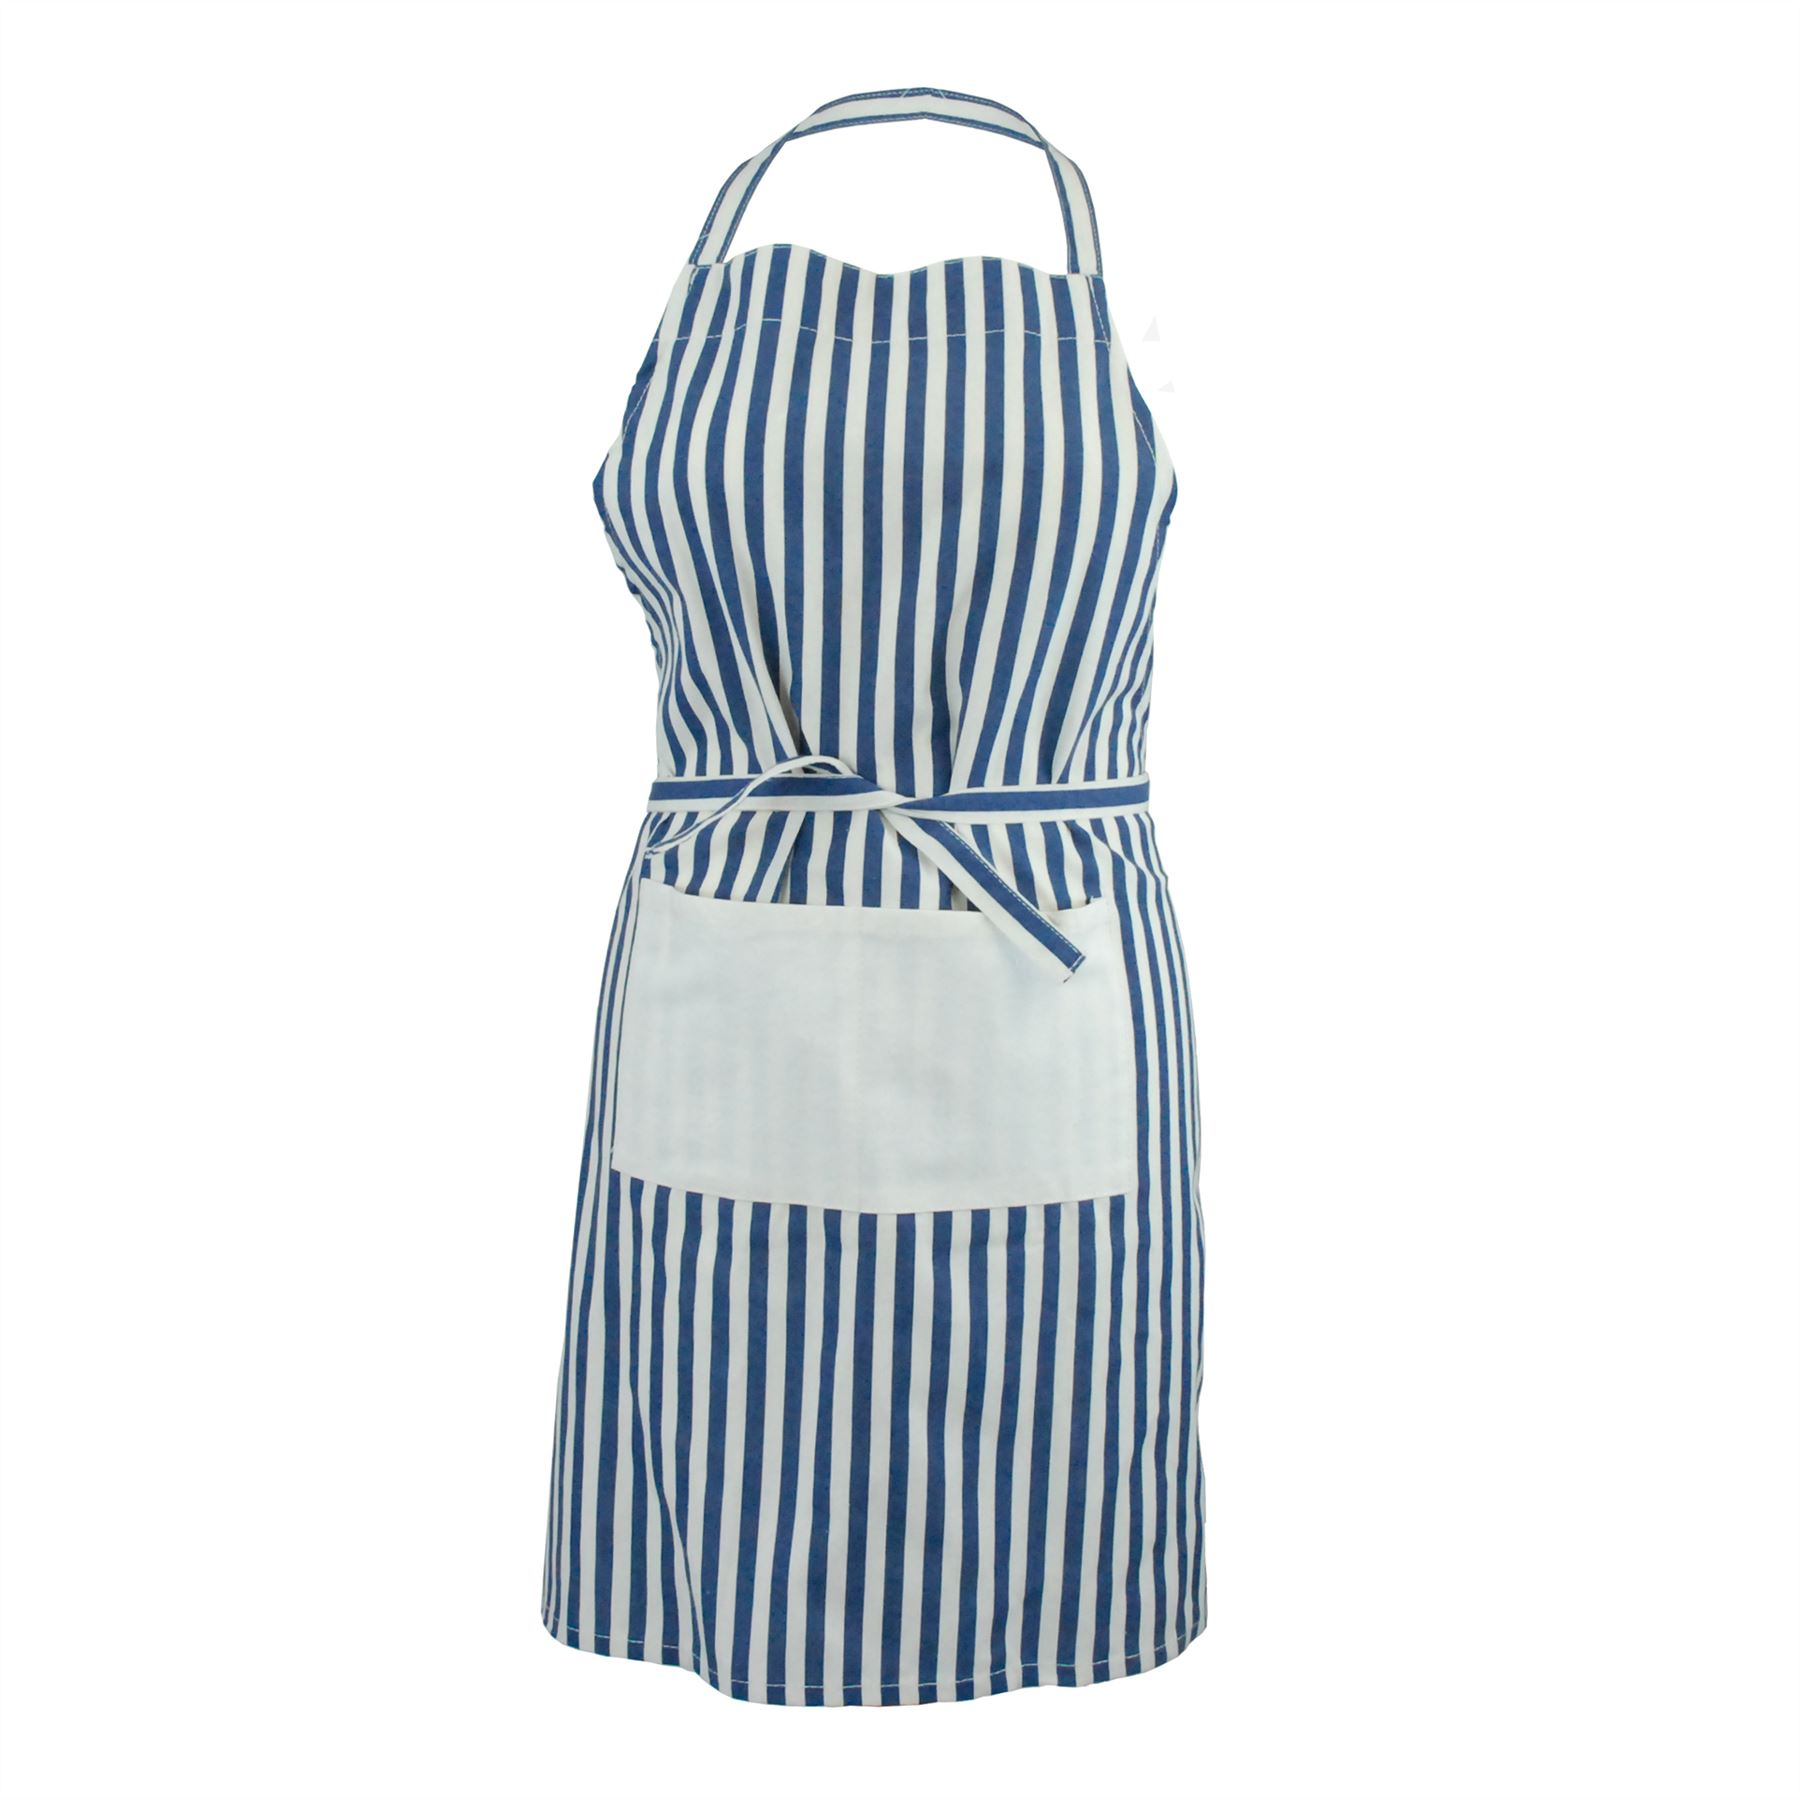 100 Cotton Kitchen Unisex Chef Cook Bbq Aprons Available In 5 Designs Ebay